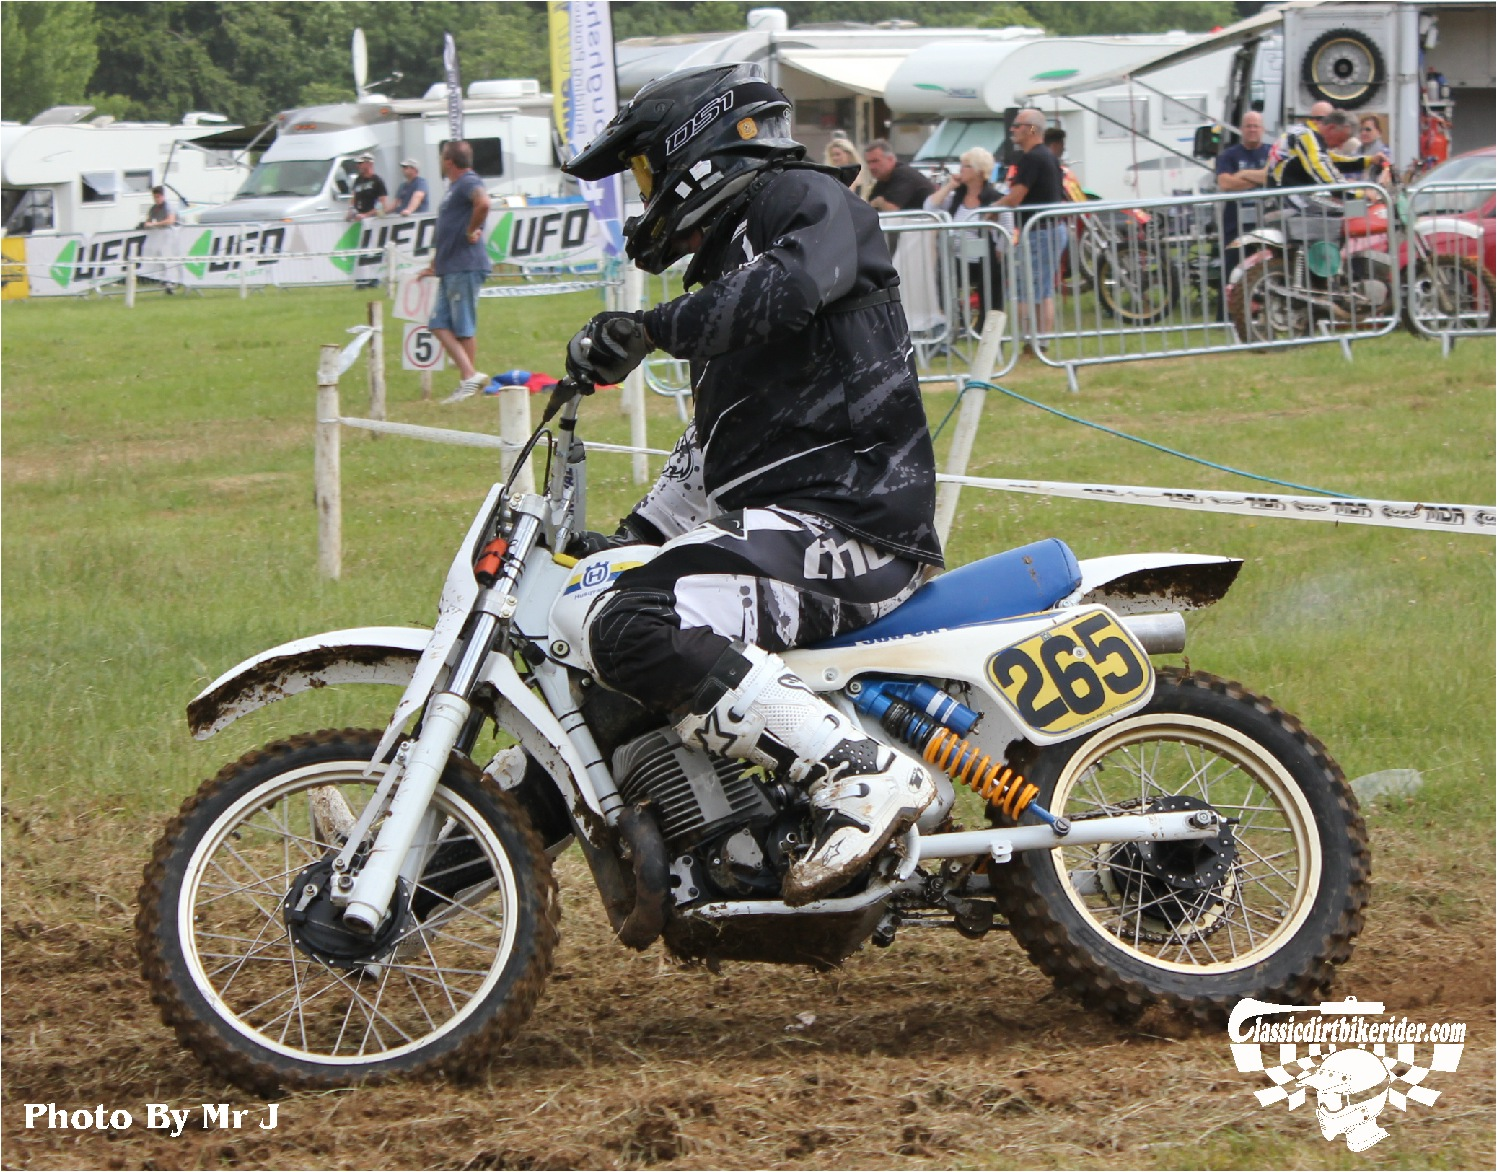 king of the castle 2015 photos Farleigh Castle twinshock motocross classicdirtbikerider.com 30